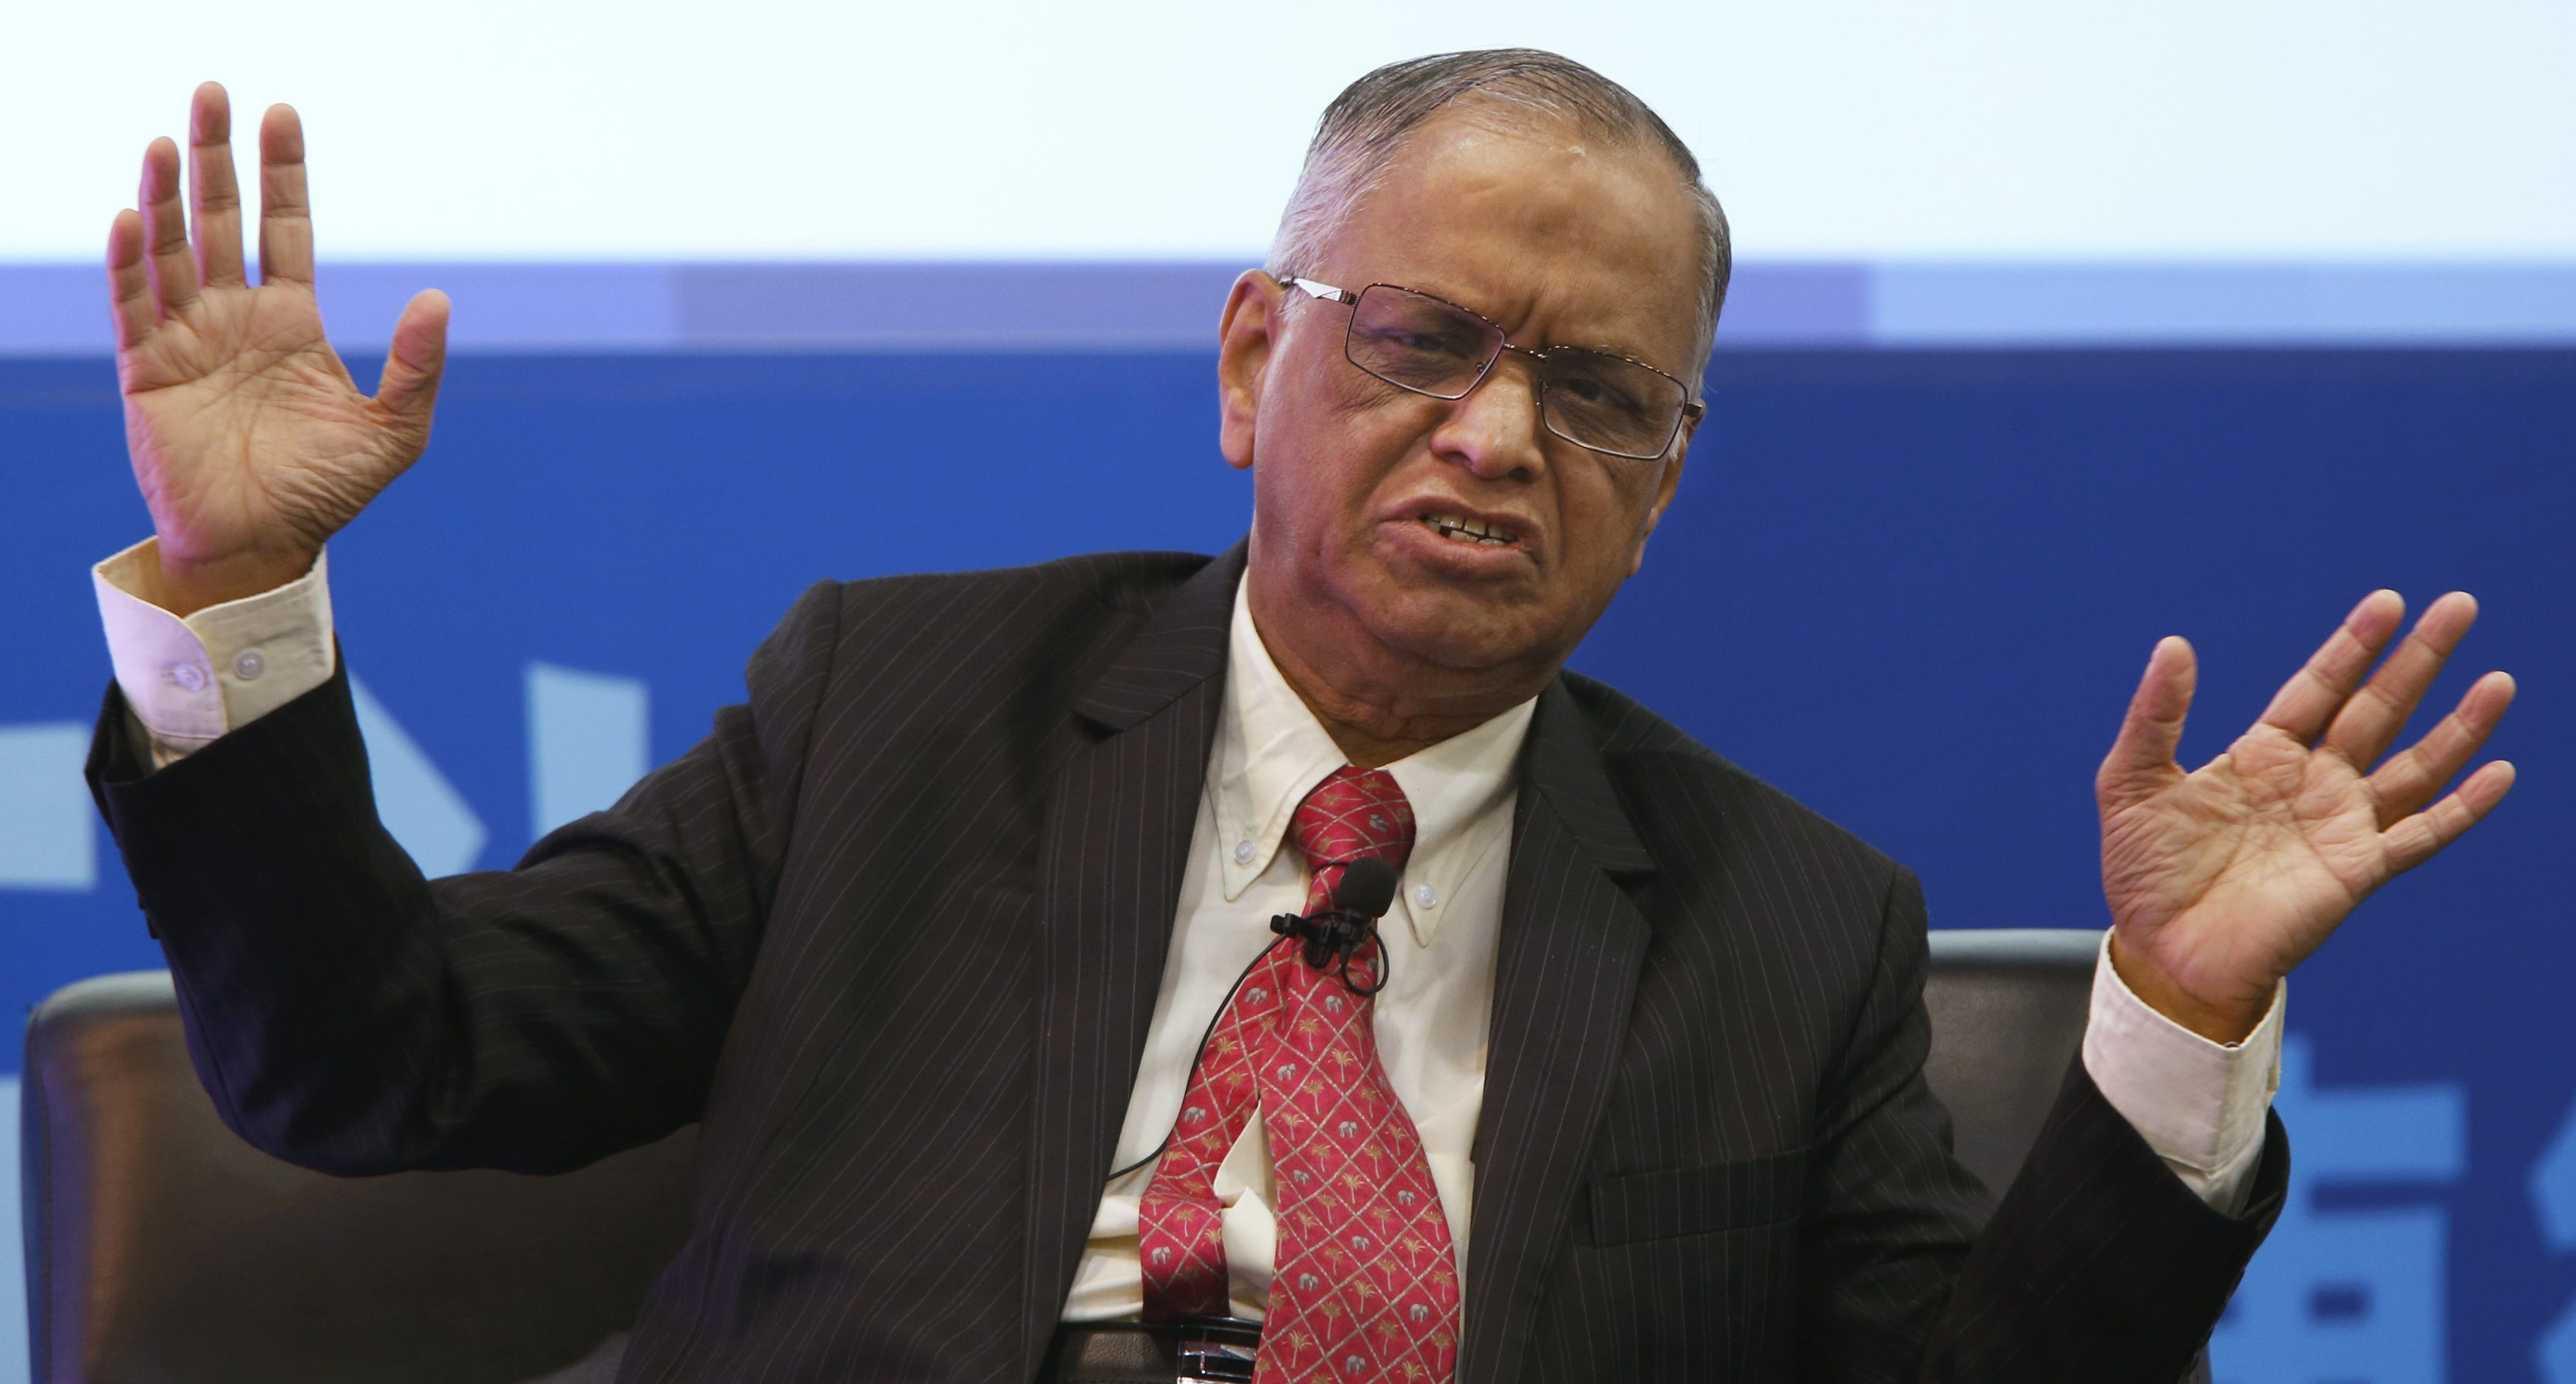 Narayana Murthy, founder of Infosys Limited, speaks during a dialogue session at the Asian Financial Forum in Hong Kong January 19, 2015.